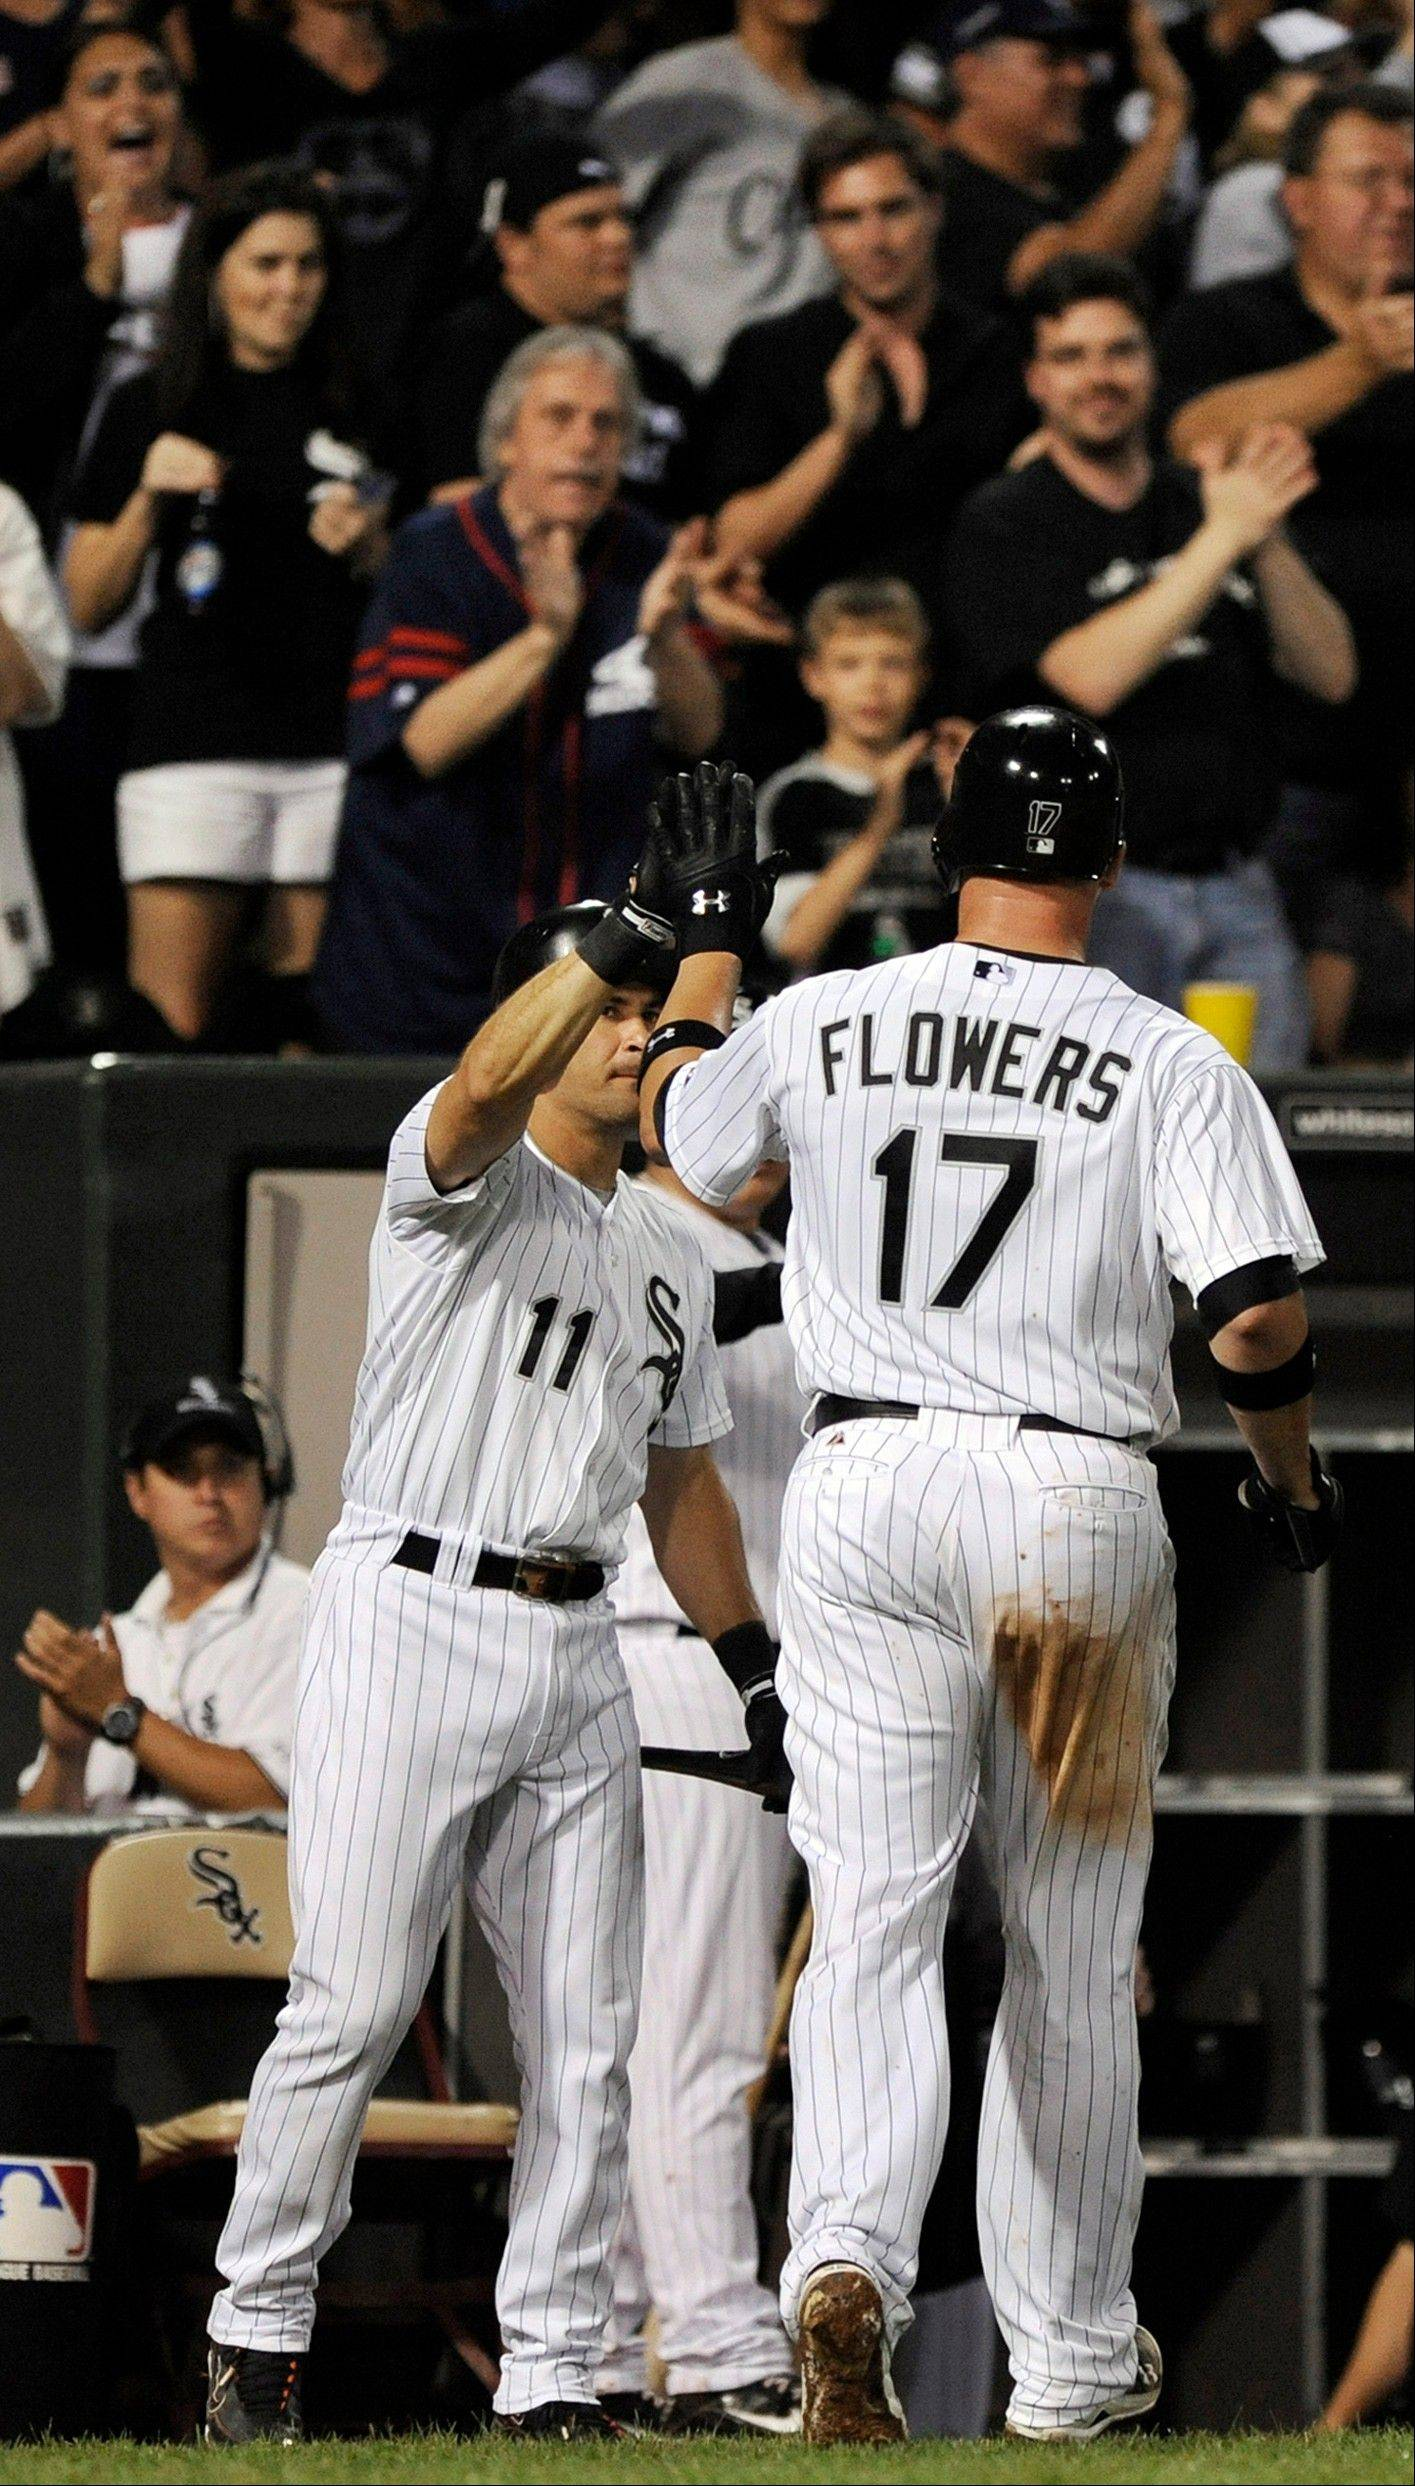 Chicago White Sox's Tyler Flowers right, celebrates with teammate Omar Vizquel after hitting a solo home run against the Kansas City Royals during the fifth inning of a baseball game in Chicago, Saturday, Aug. 13, 2011.